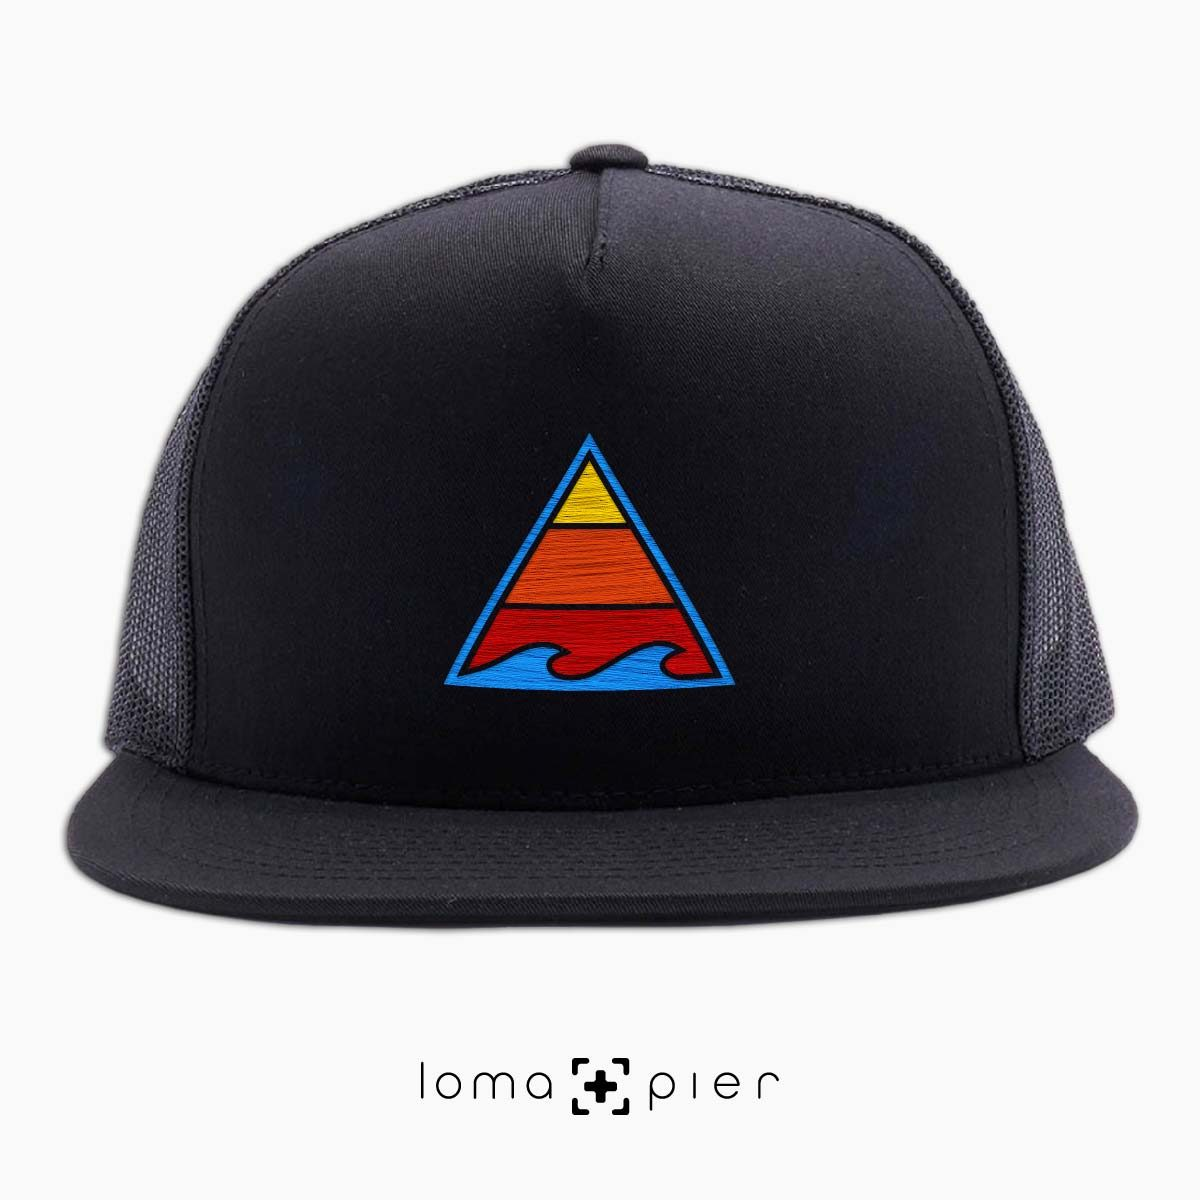 RIDE THAT WAVE beach netback hat in black by loma+pier hat store